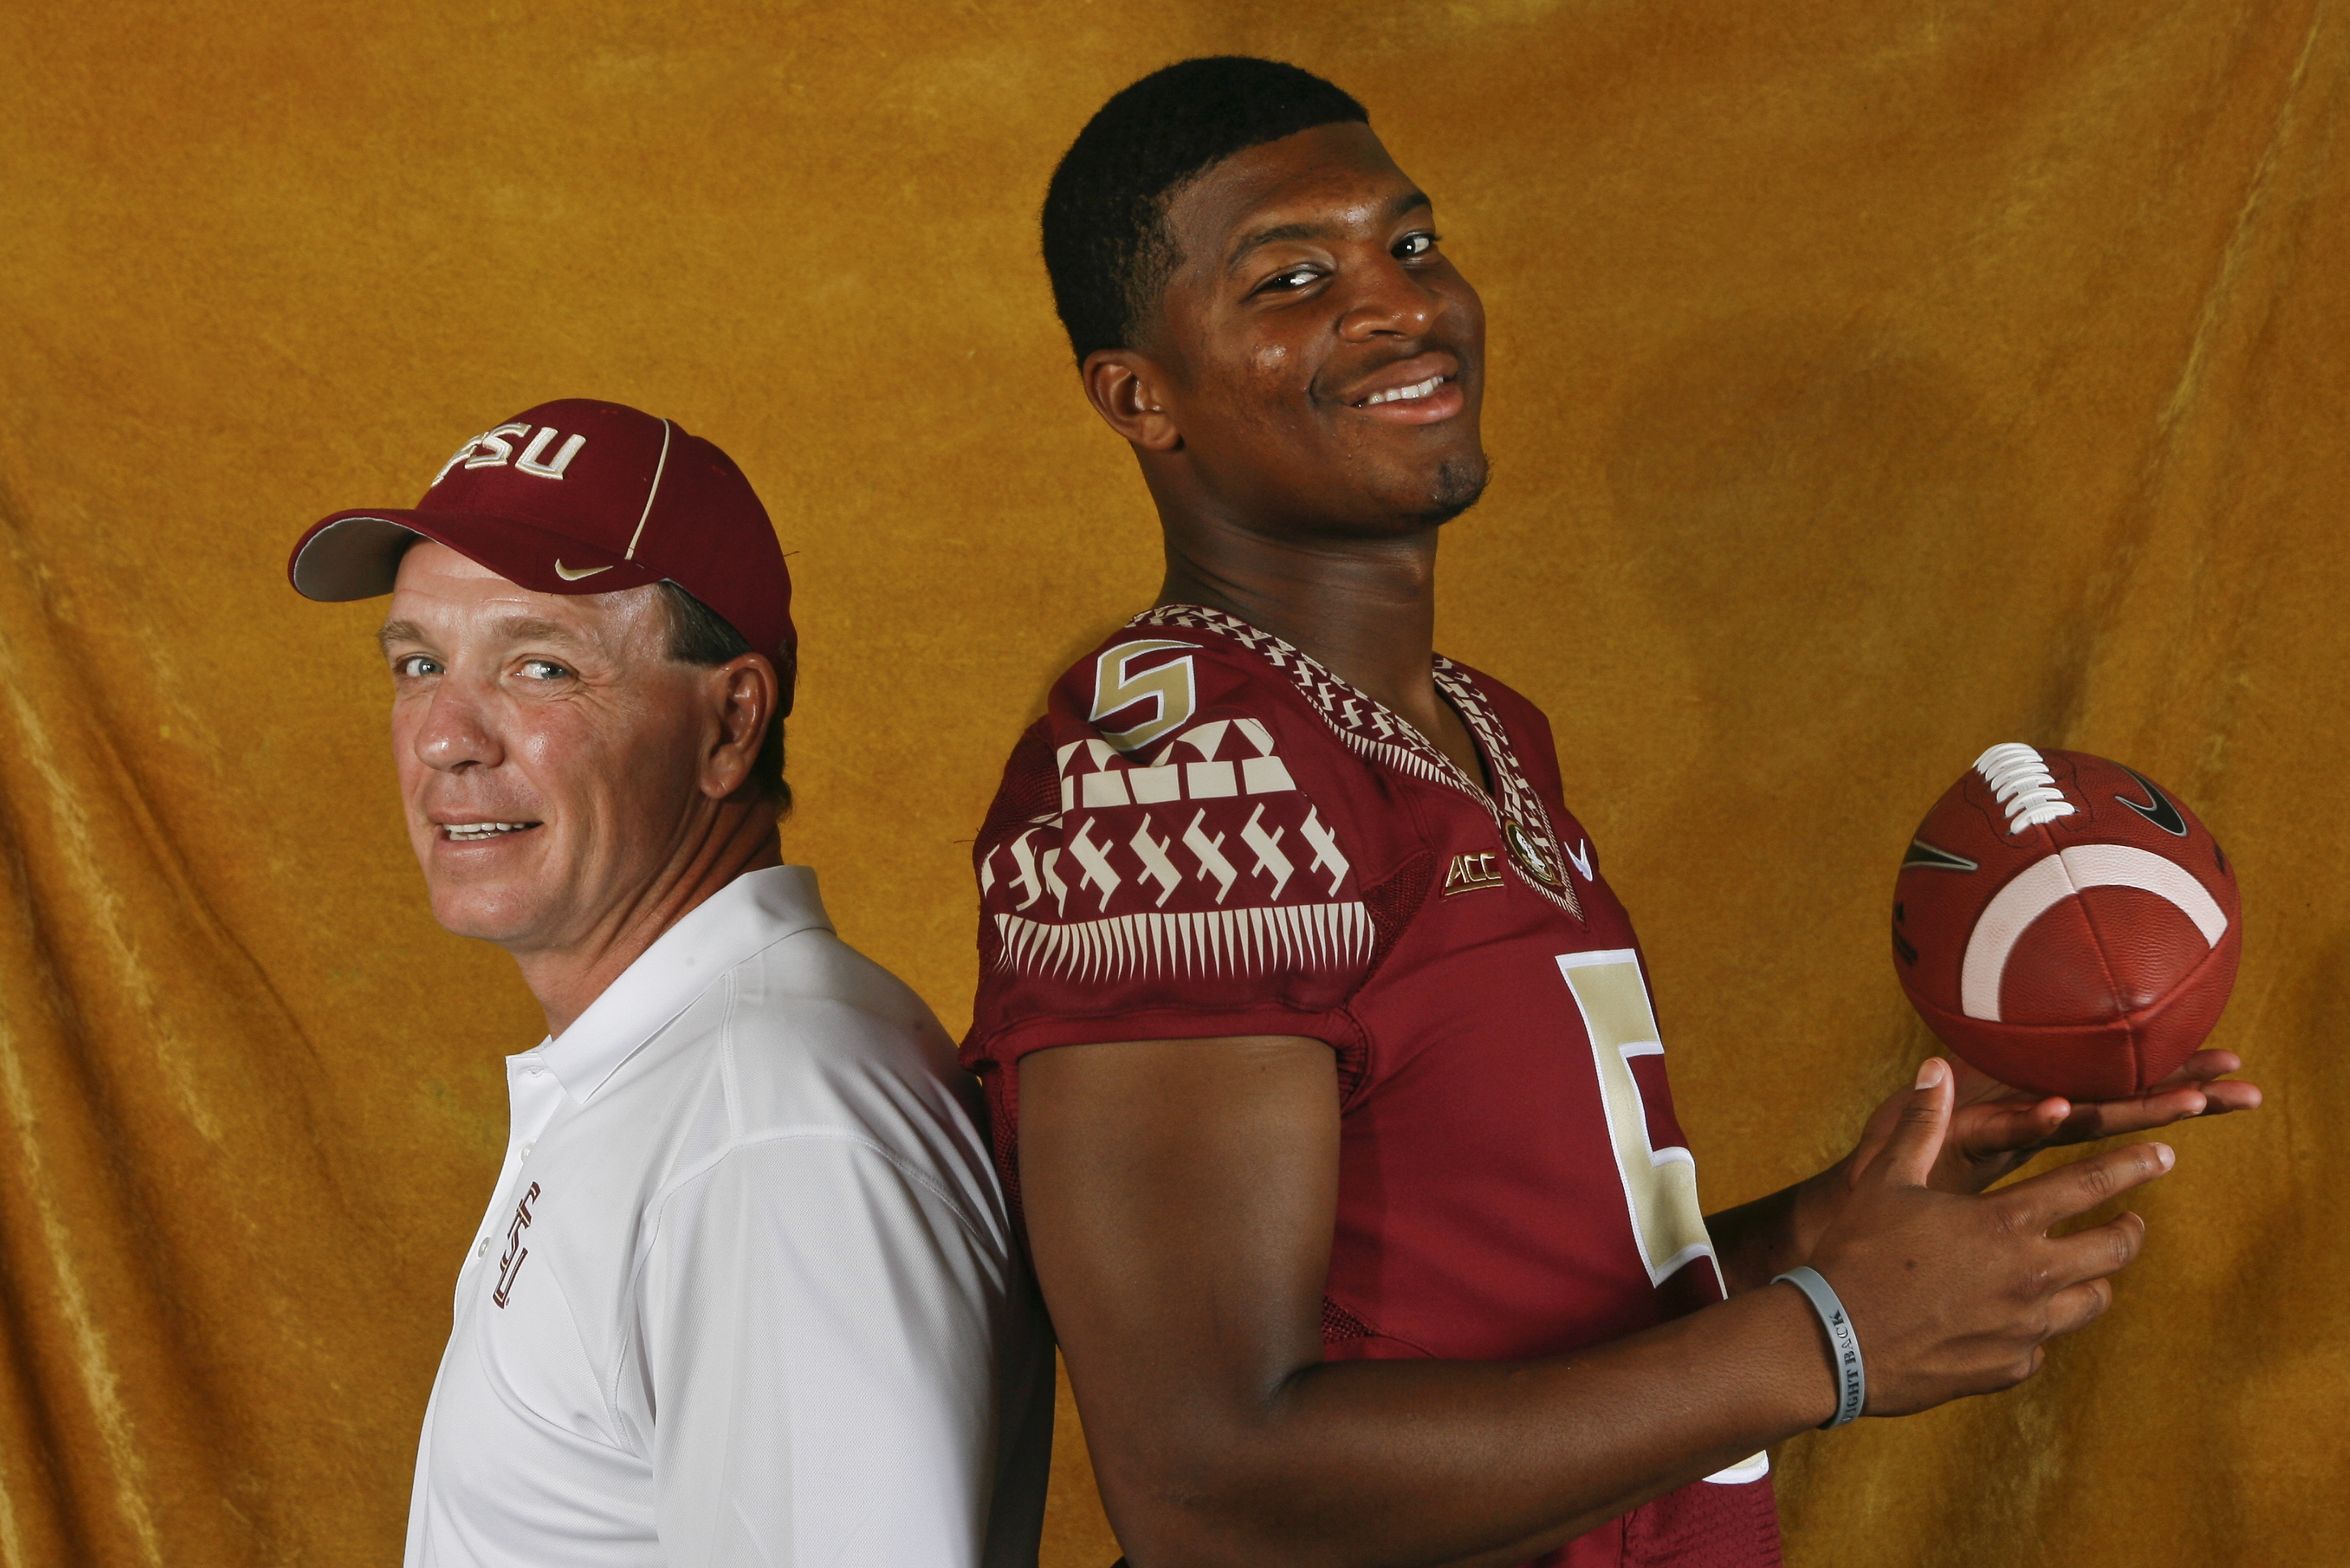 Florida State Football Depth Charts Complete 2014 Preview And Predictions Bleacher Report Latest News Videos And Highlights